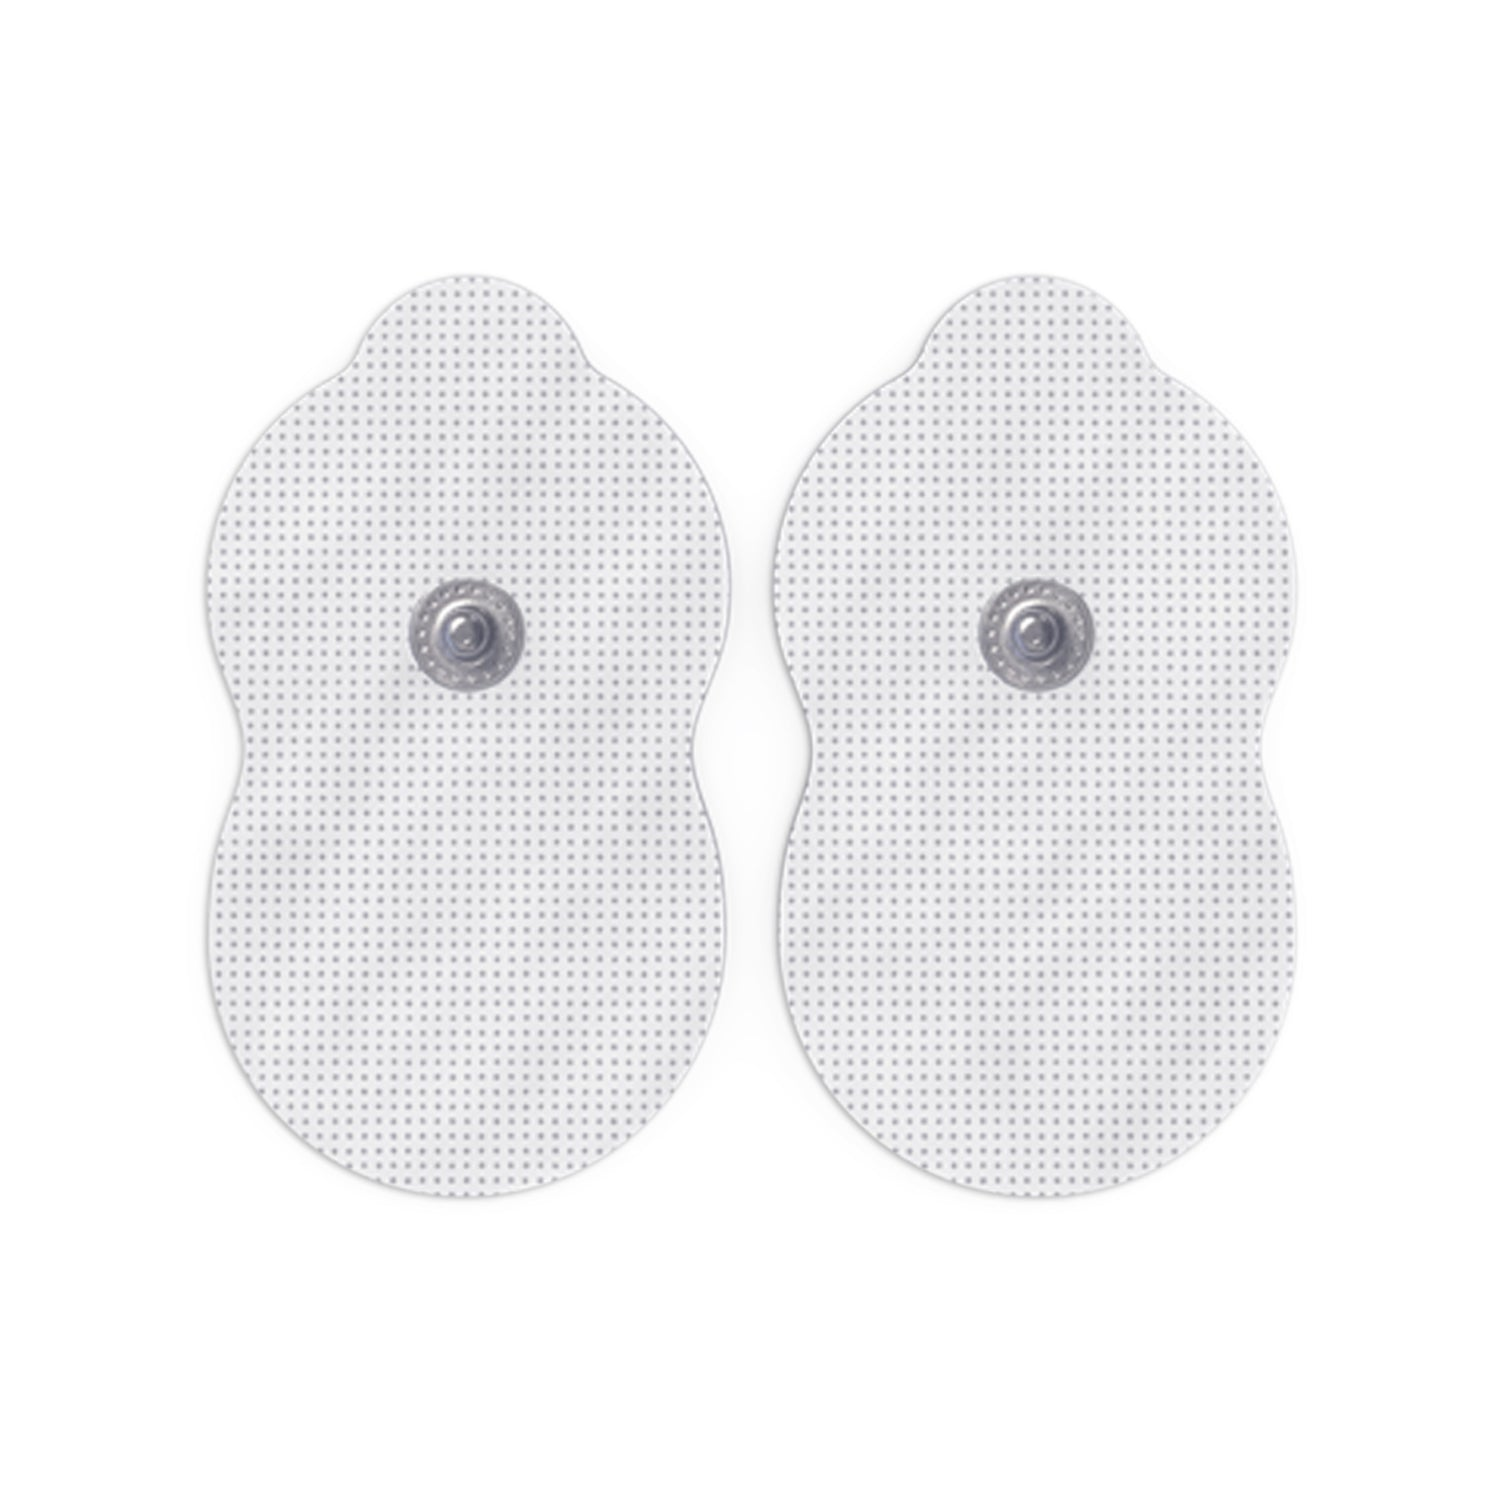 Pair of Snap-On Large Gourd-Shaped Pads - HealthmateForever